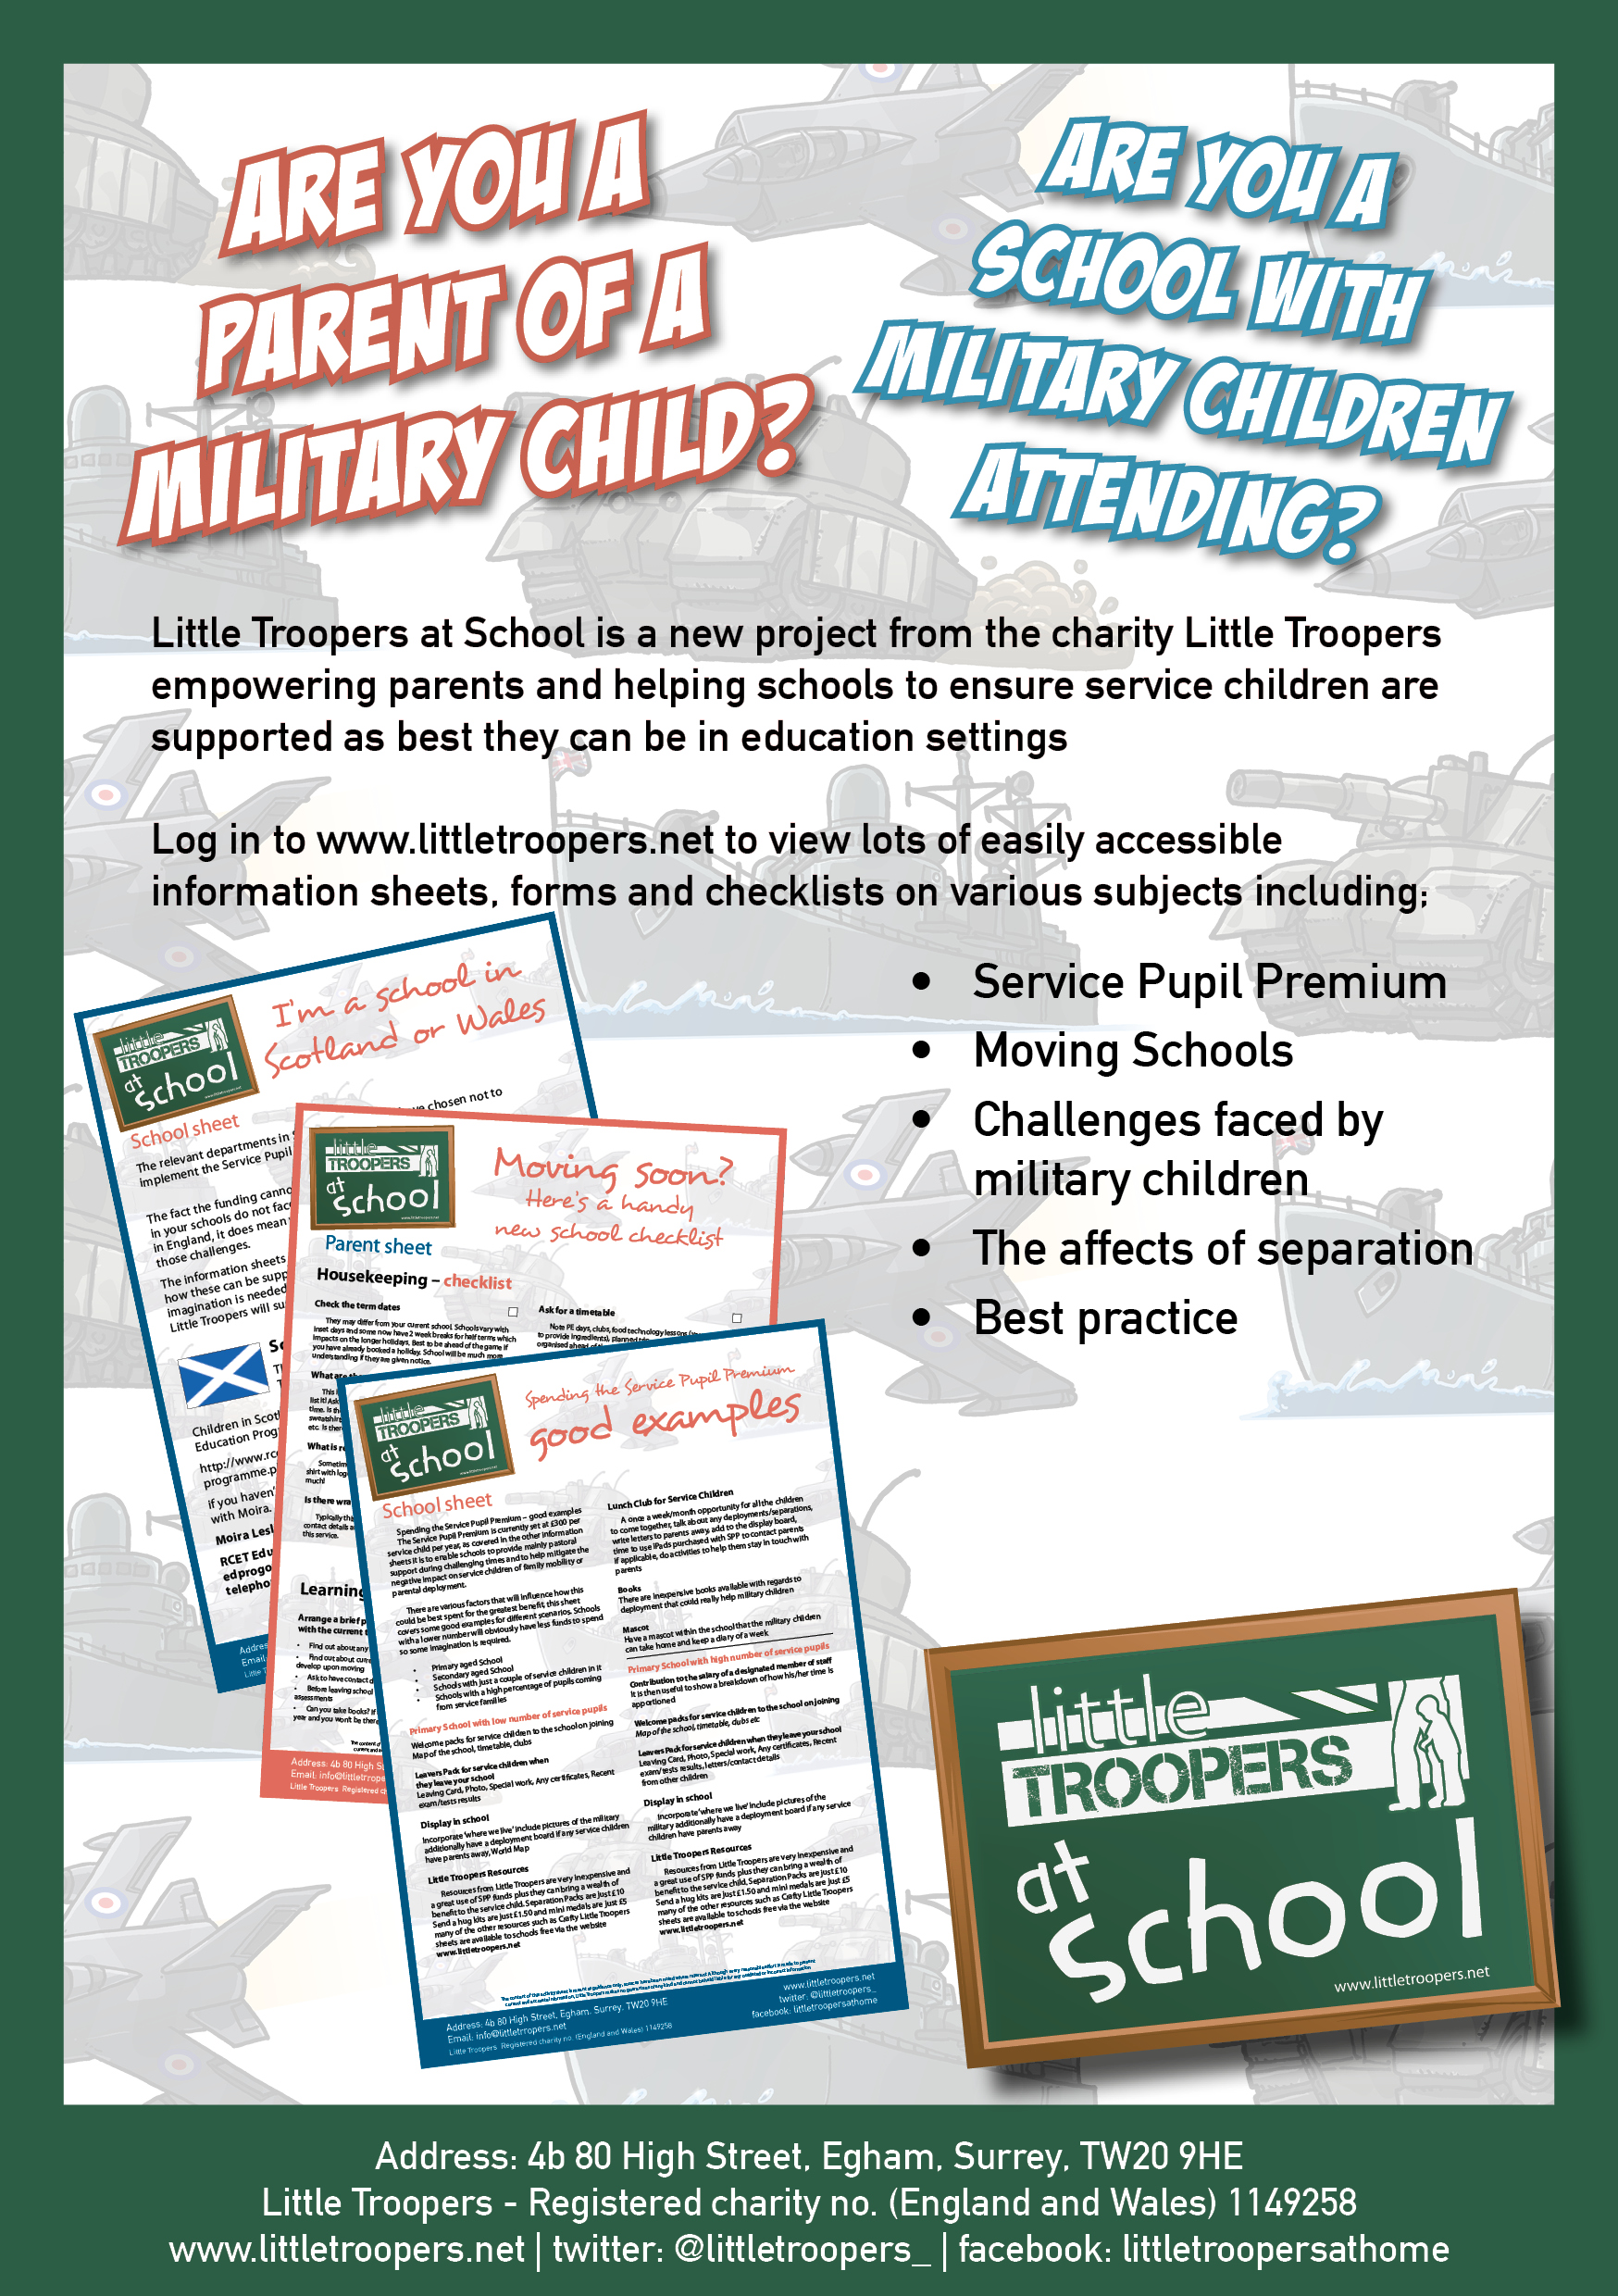 little troopers at school kelsi org uk a printable flyer is available here jpg 2 1 mb